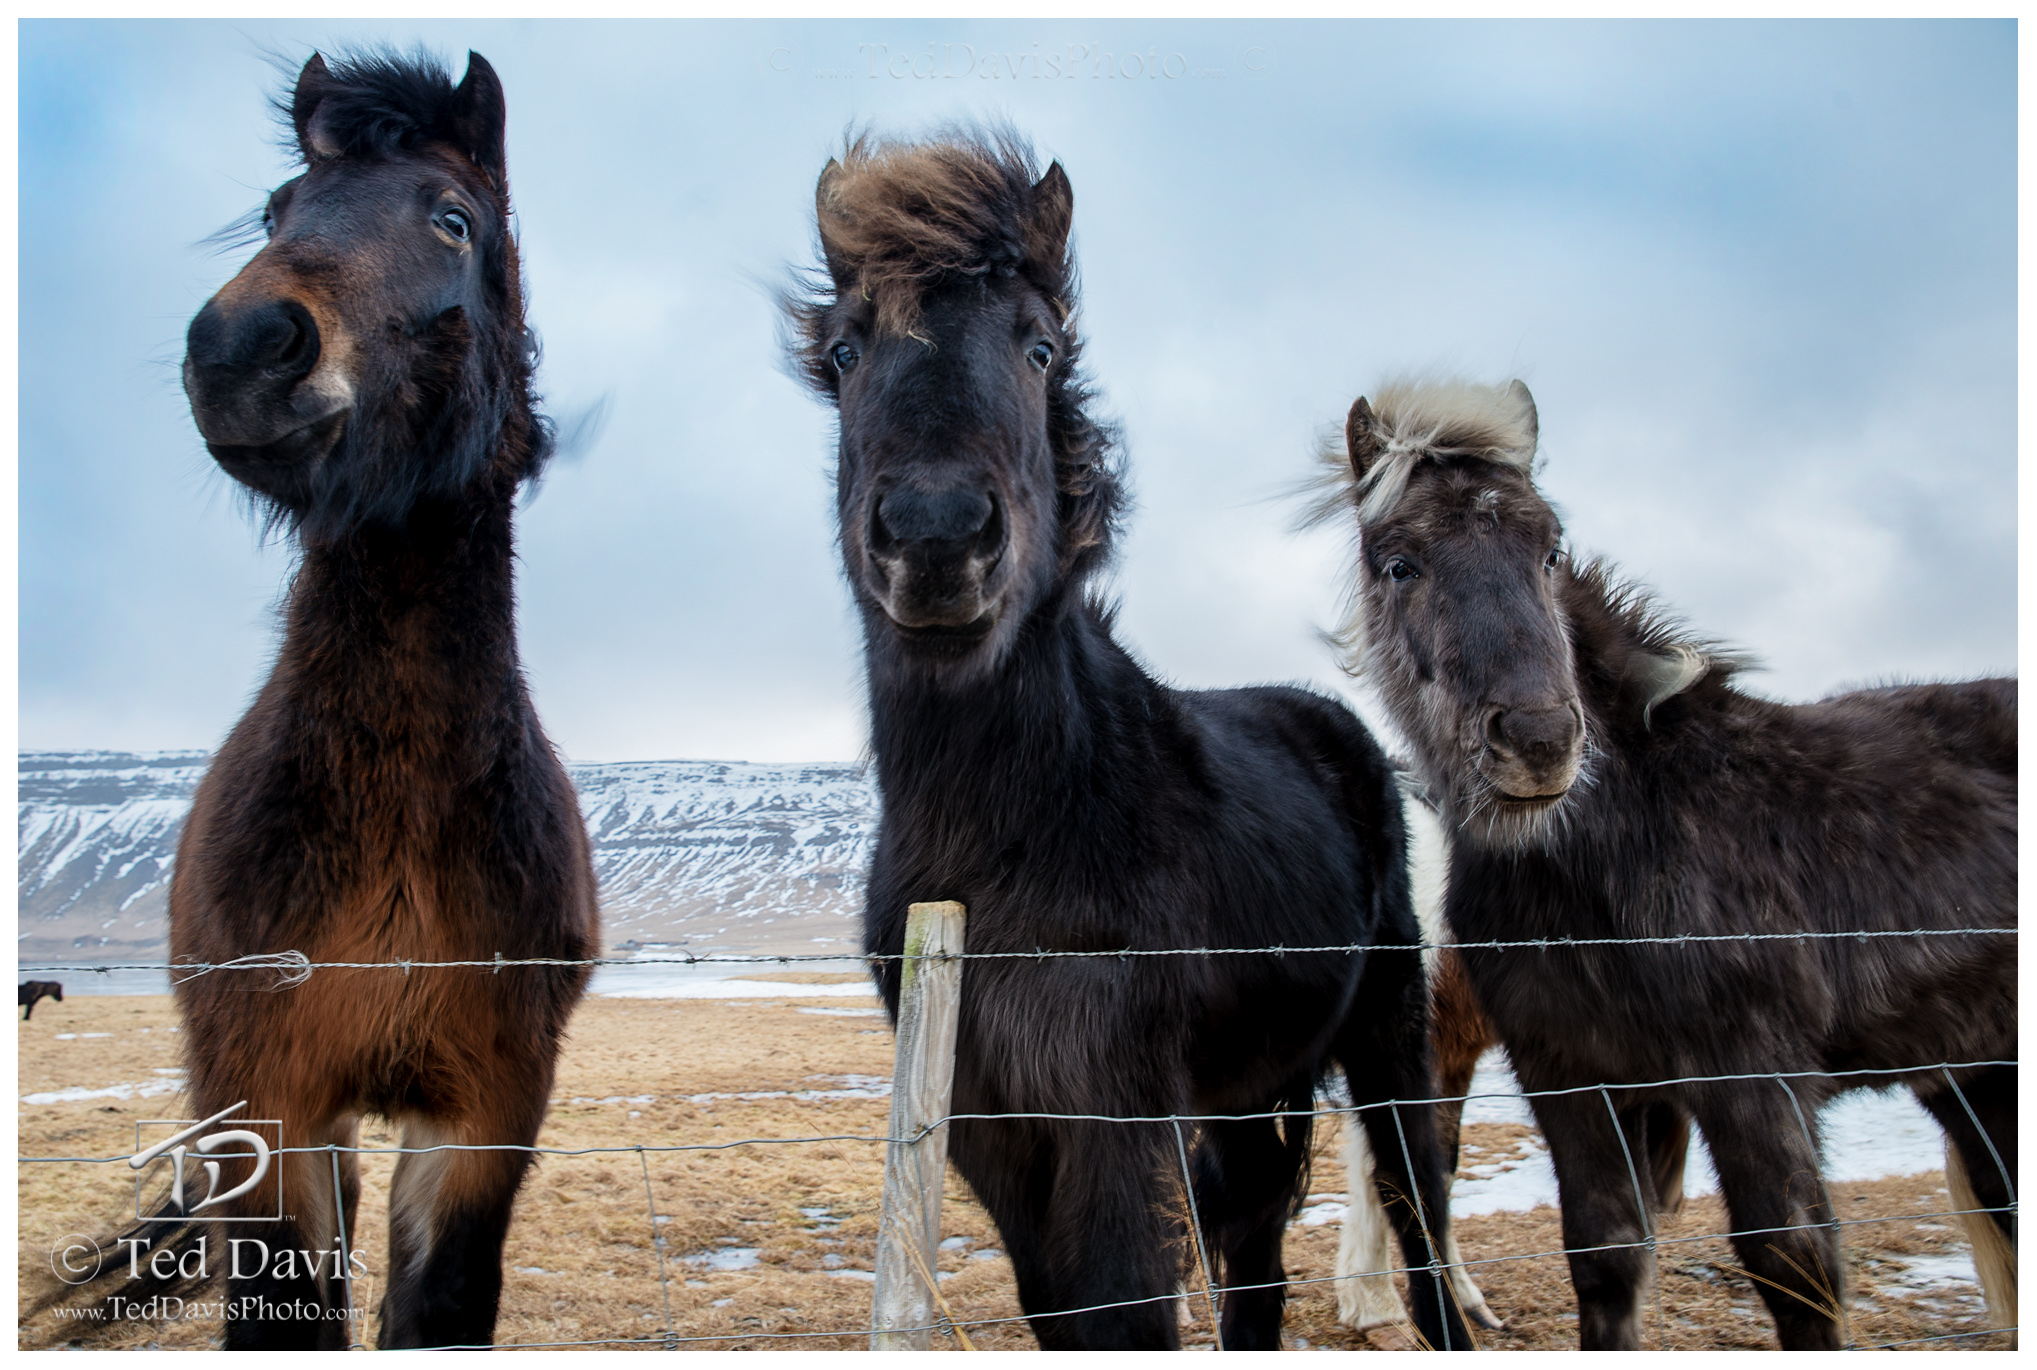 Pony, ponies, icelandic, iceland, apple, peppermint, curious, creatures, photo